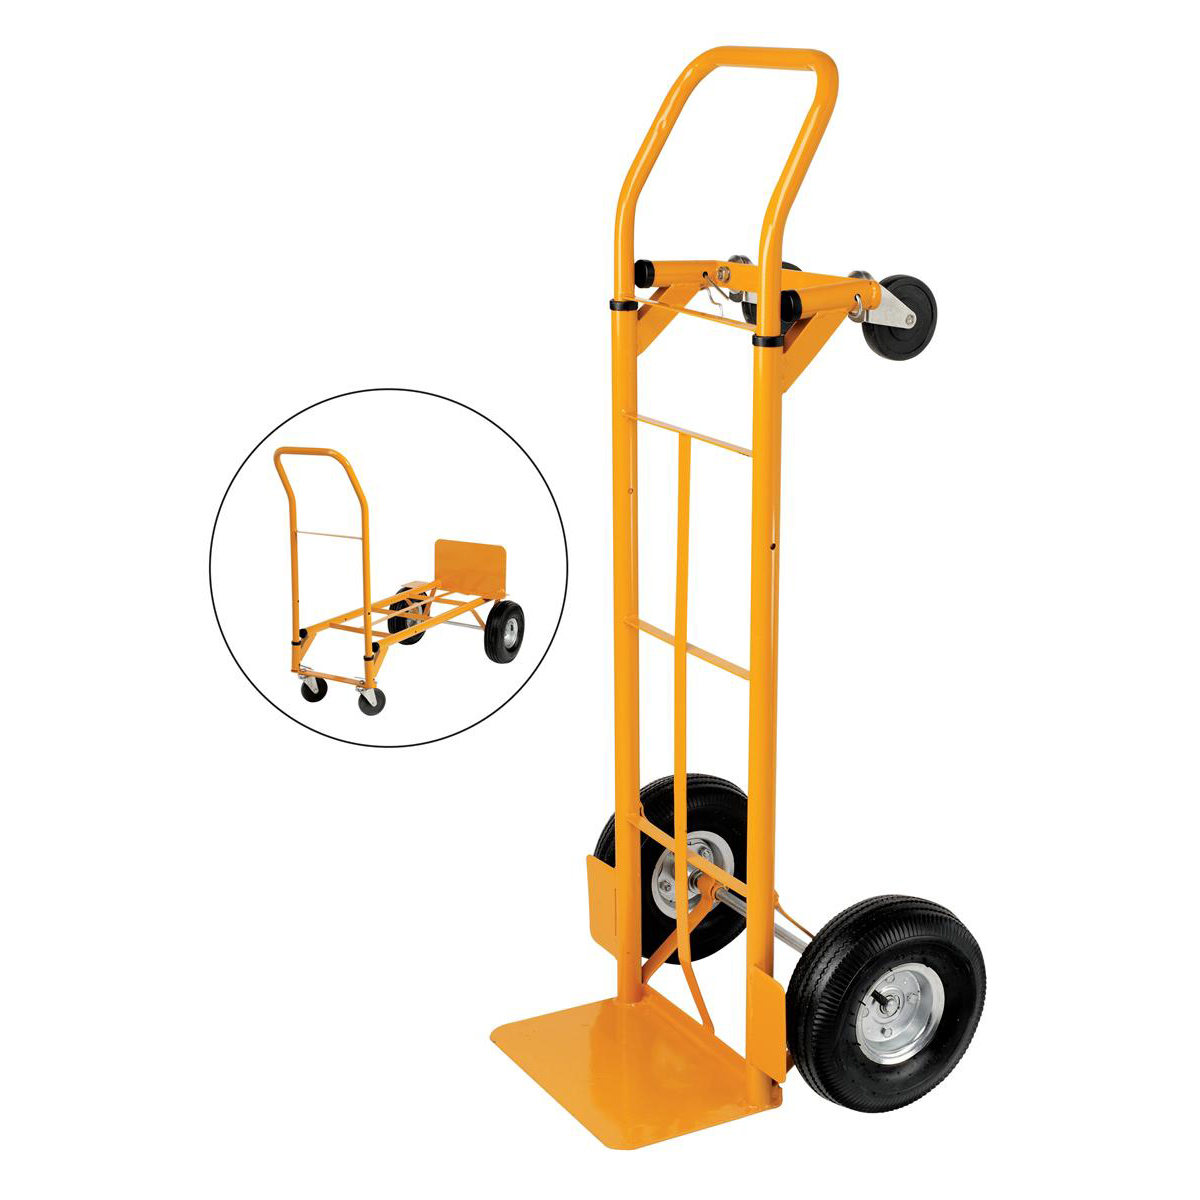 Trolleys 5 Star Facilities Universal Hand Trolley and Platform Truck Capacity 250kg Foot Size W550xL460mm Yellow